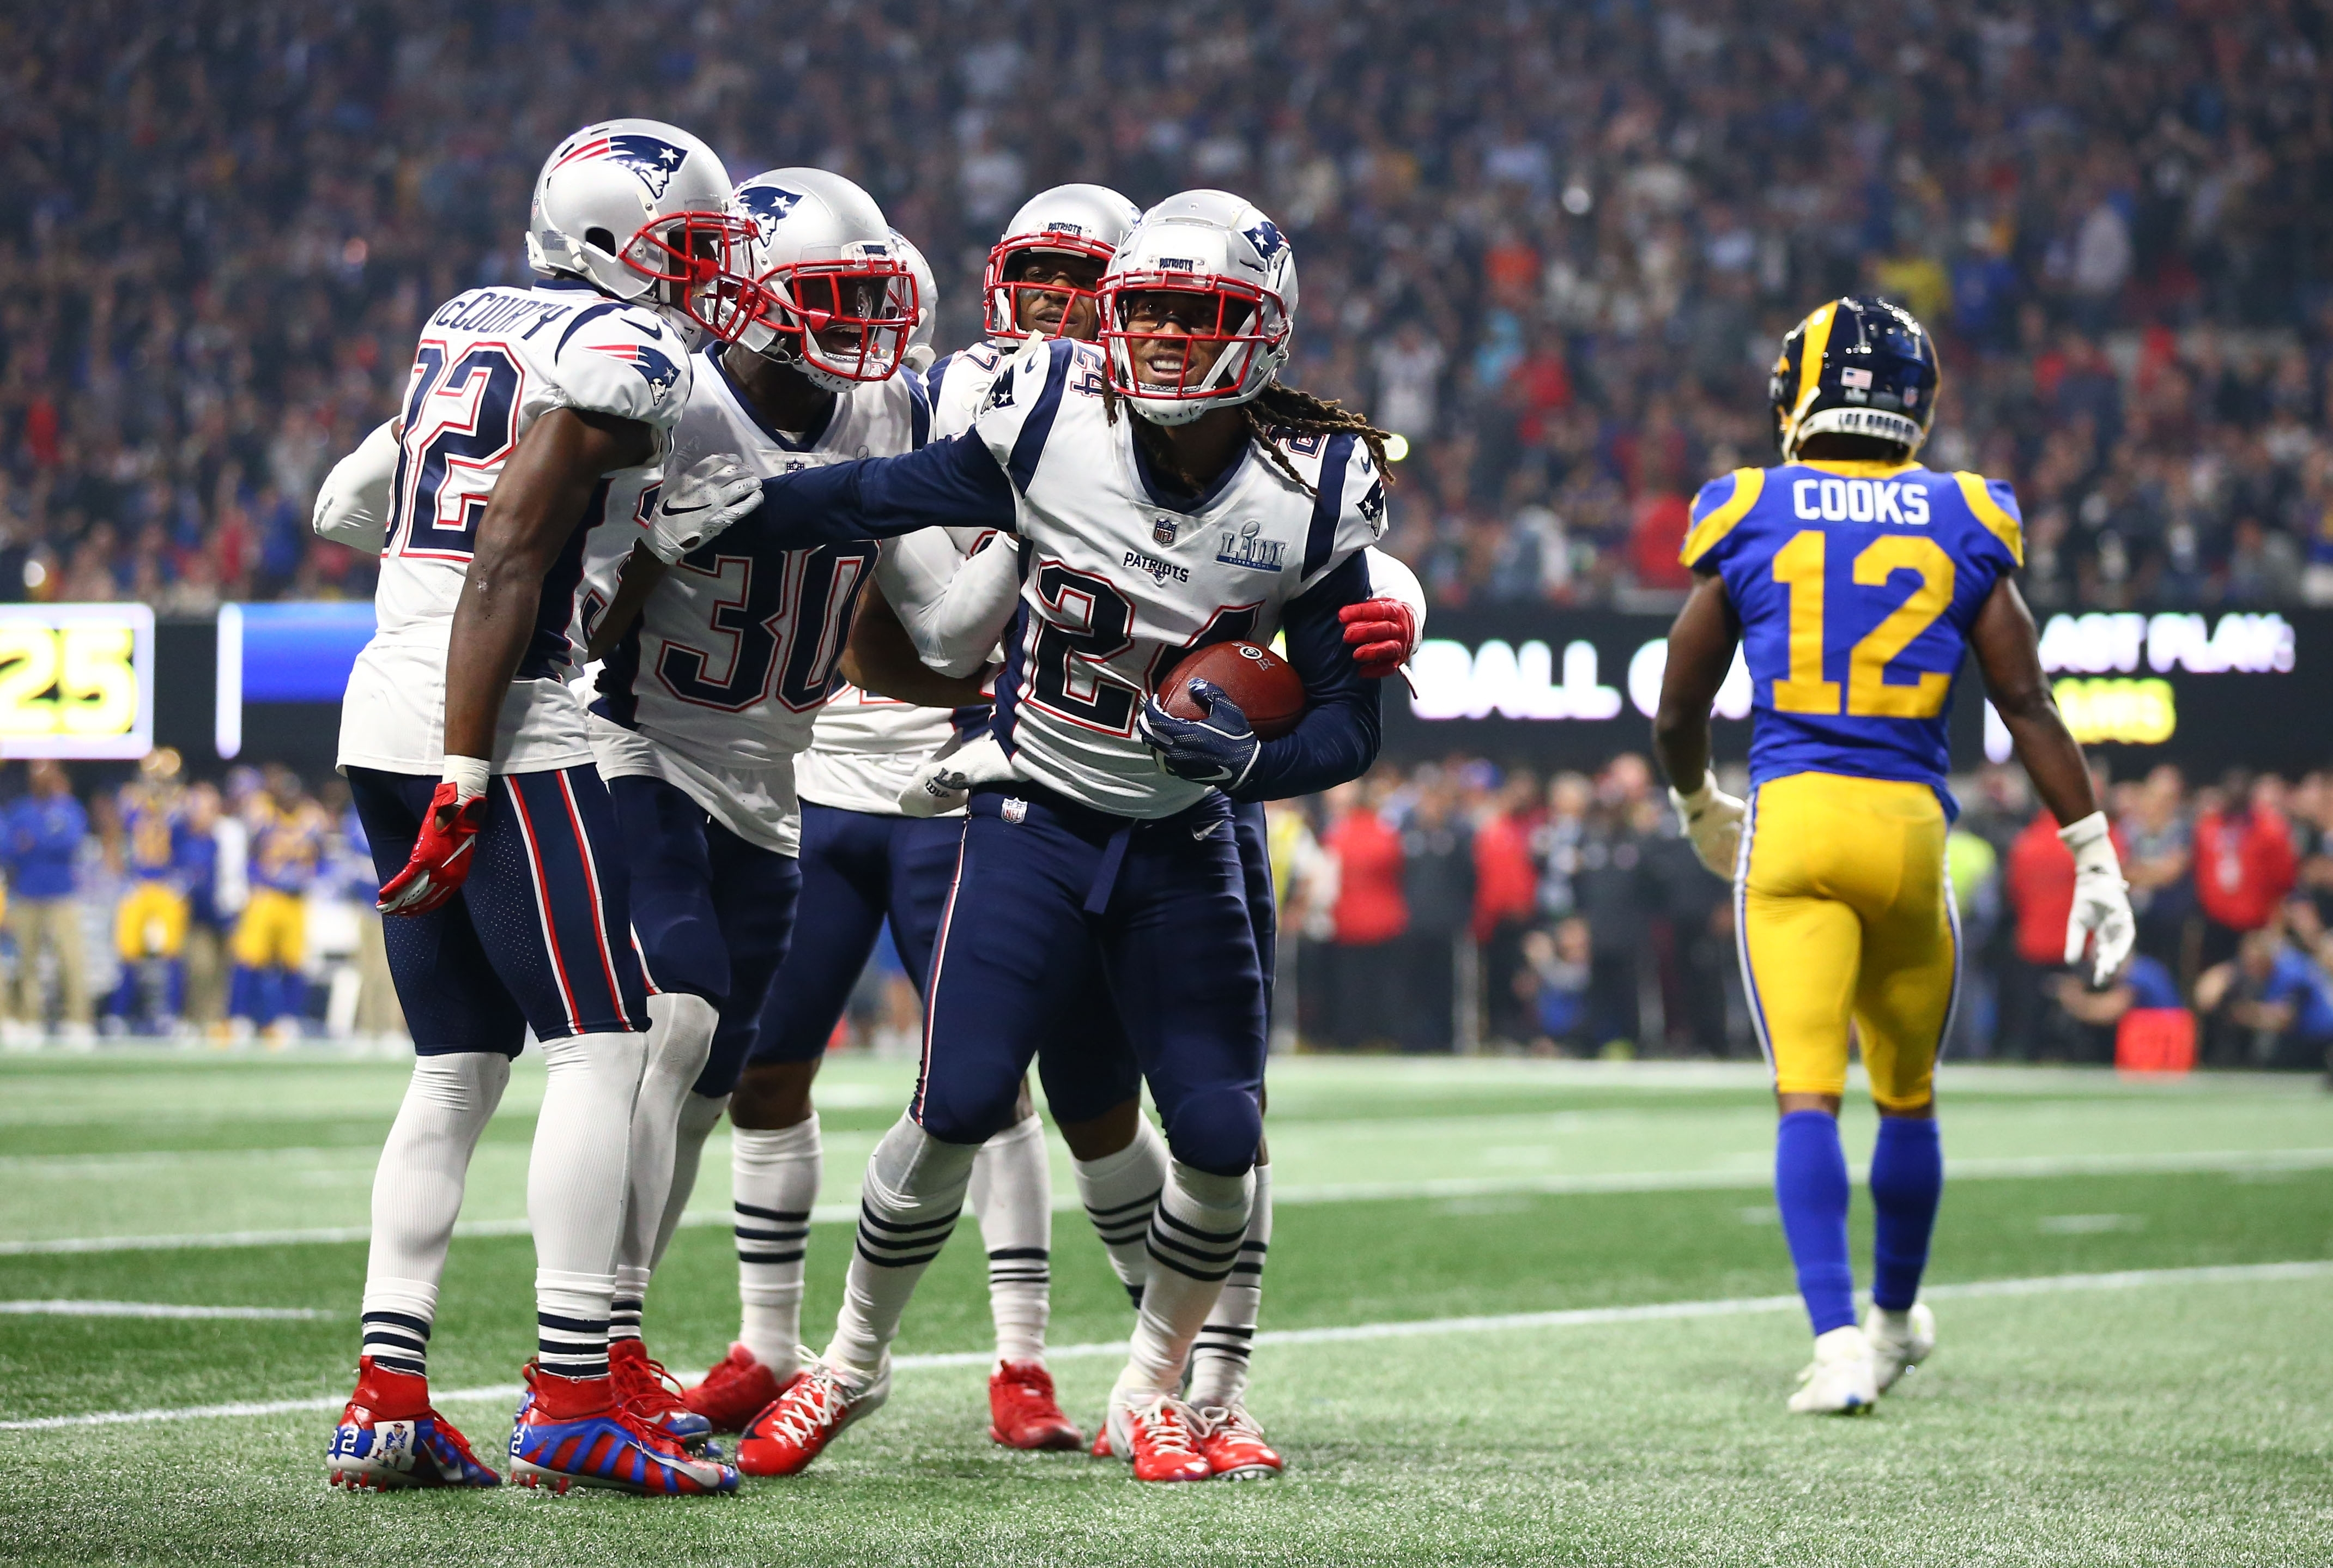 4 Biggest Takeaways From The Patriots' Super Bowl Victory in Pats Rams Super Bowl